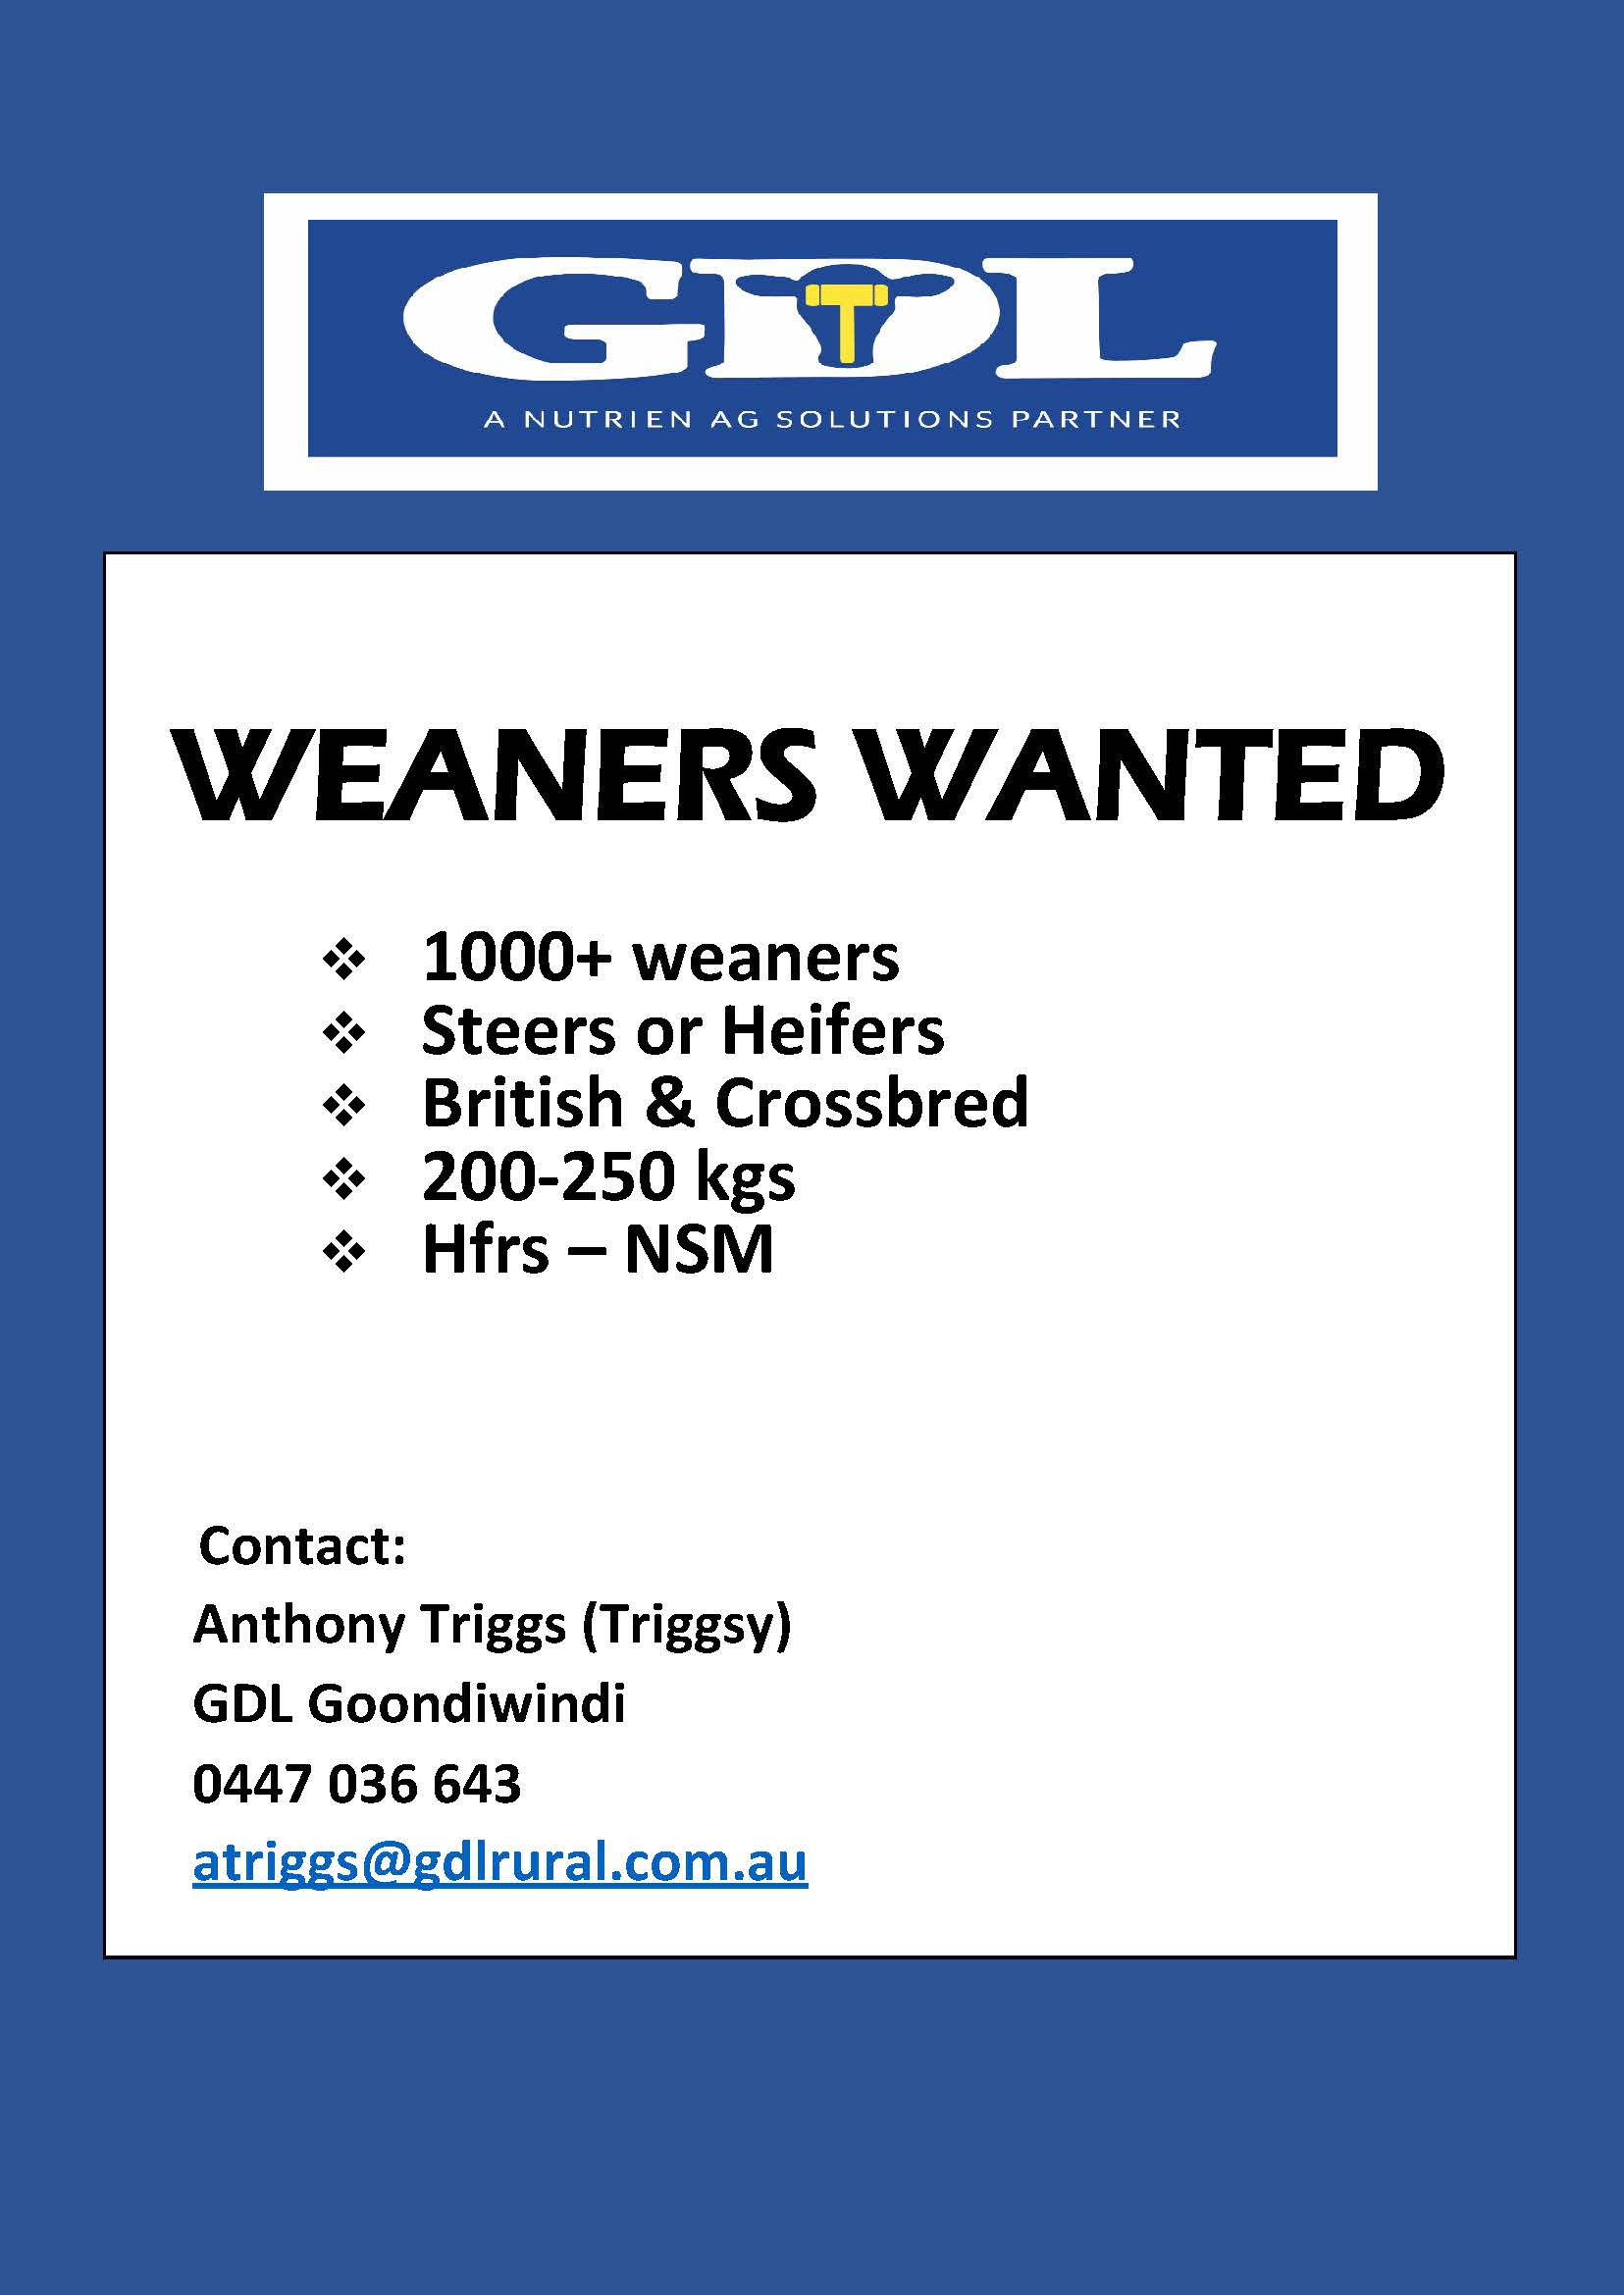 Wanted – Weaners